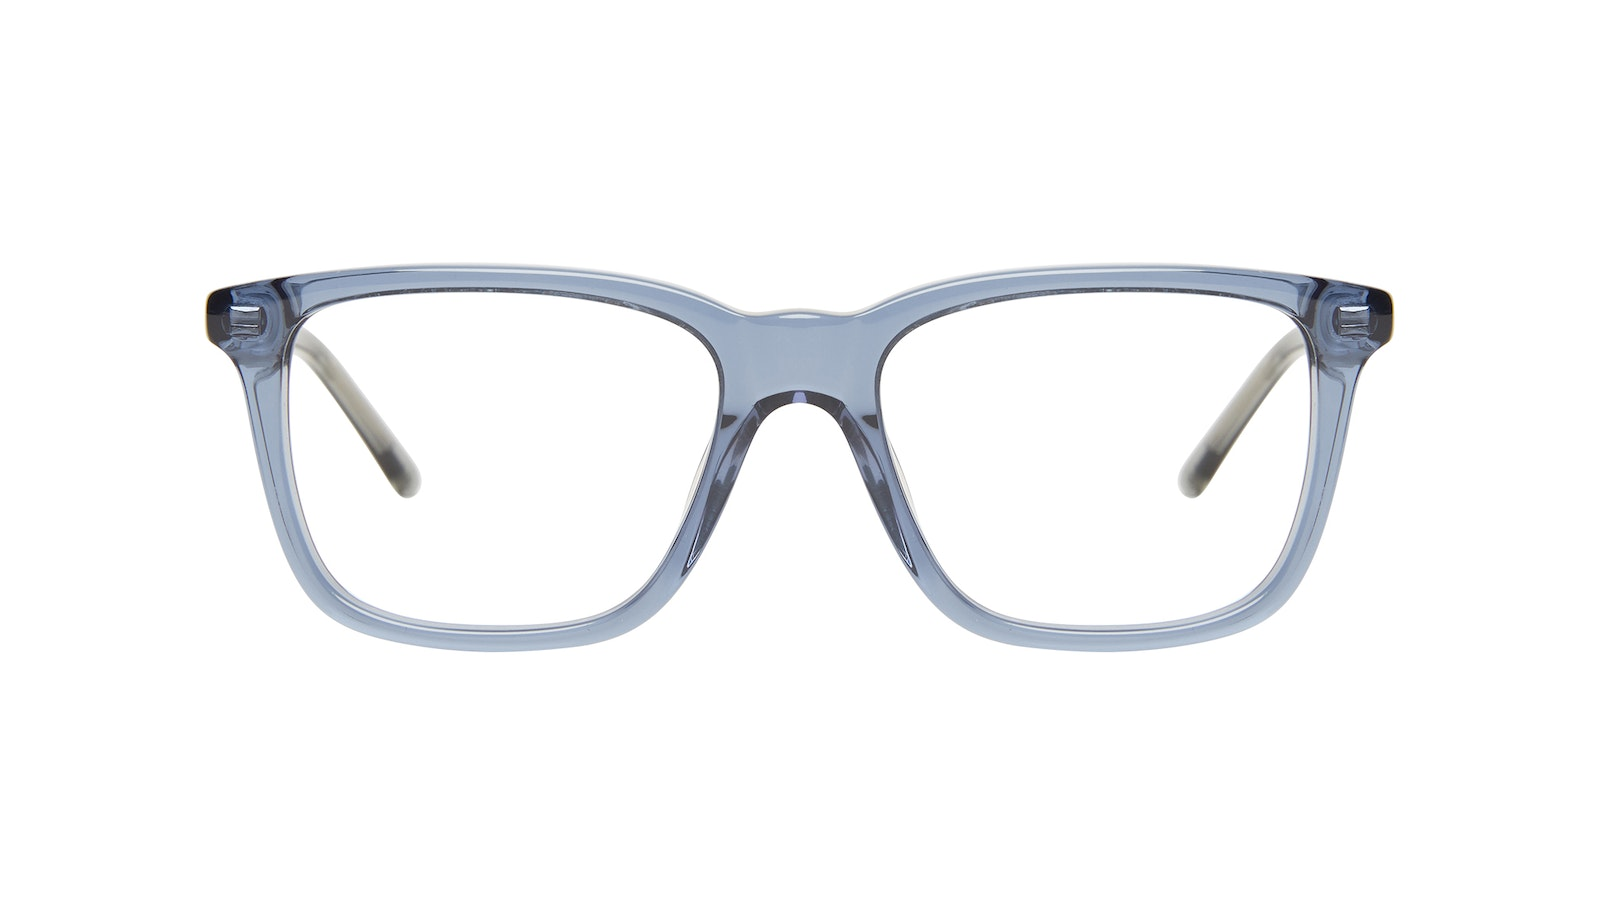 Affordable Fashion Glasses Square Eyeglasses Kids Code Junior Oxford Grey